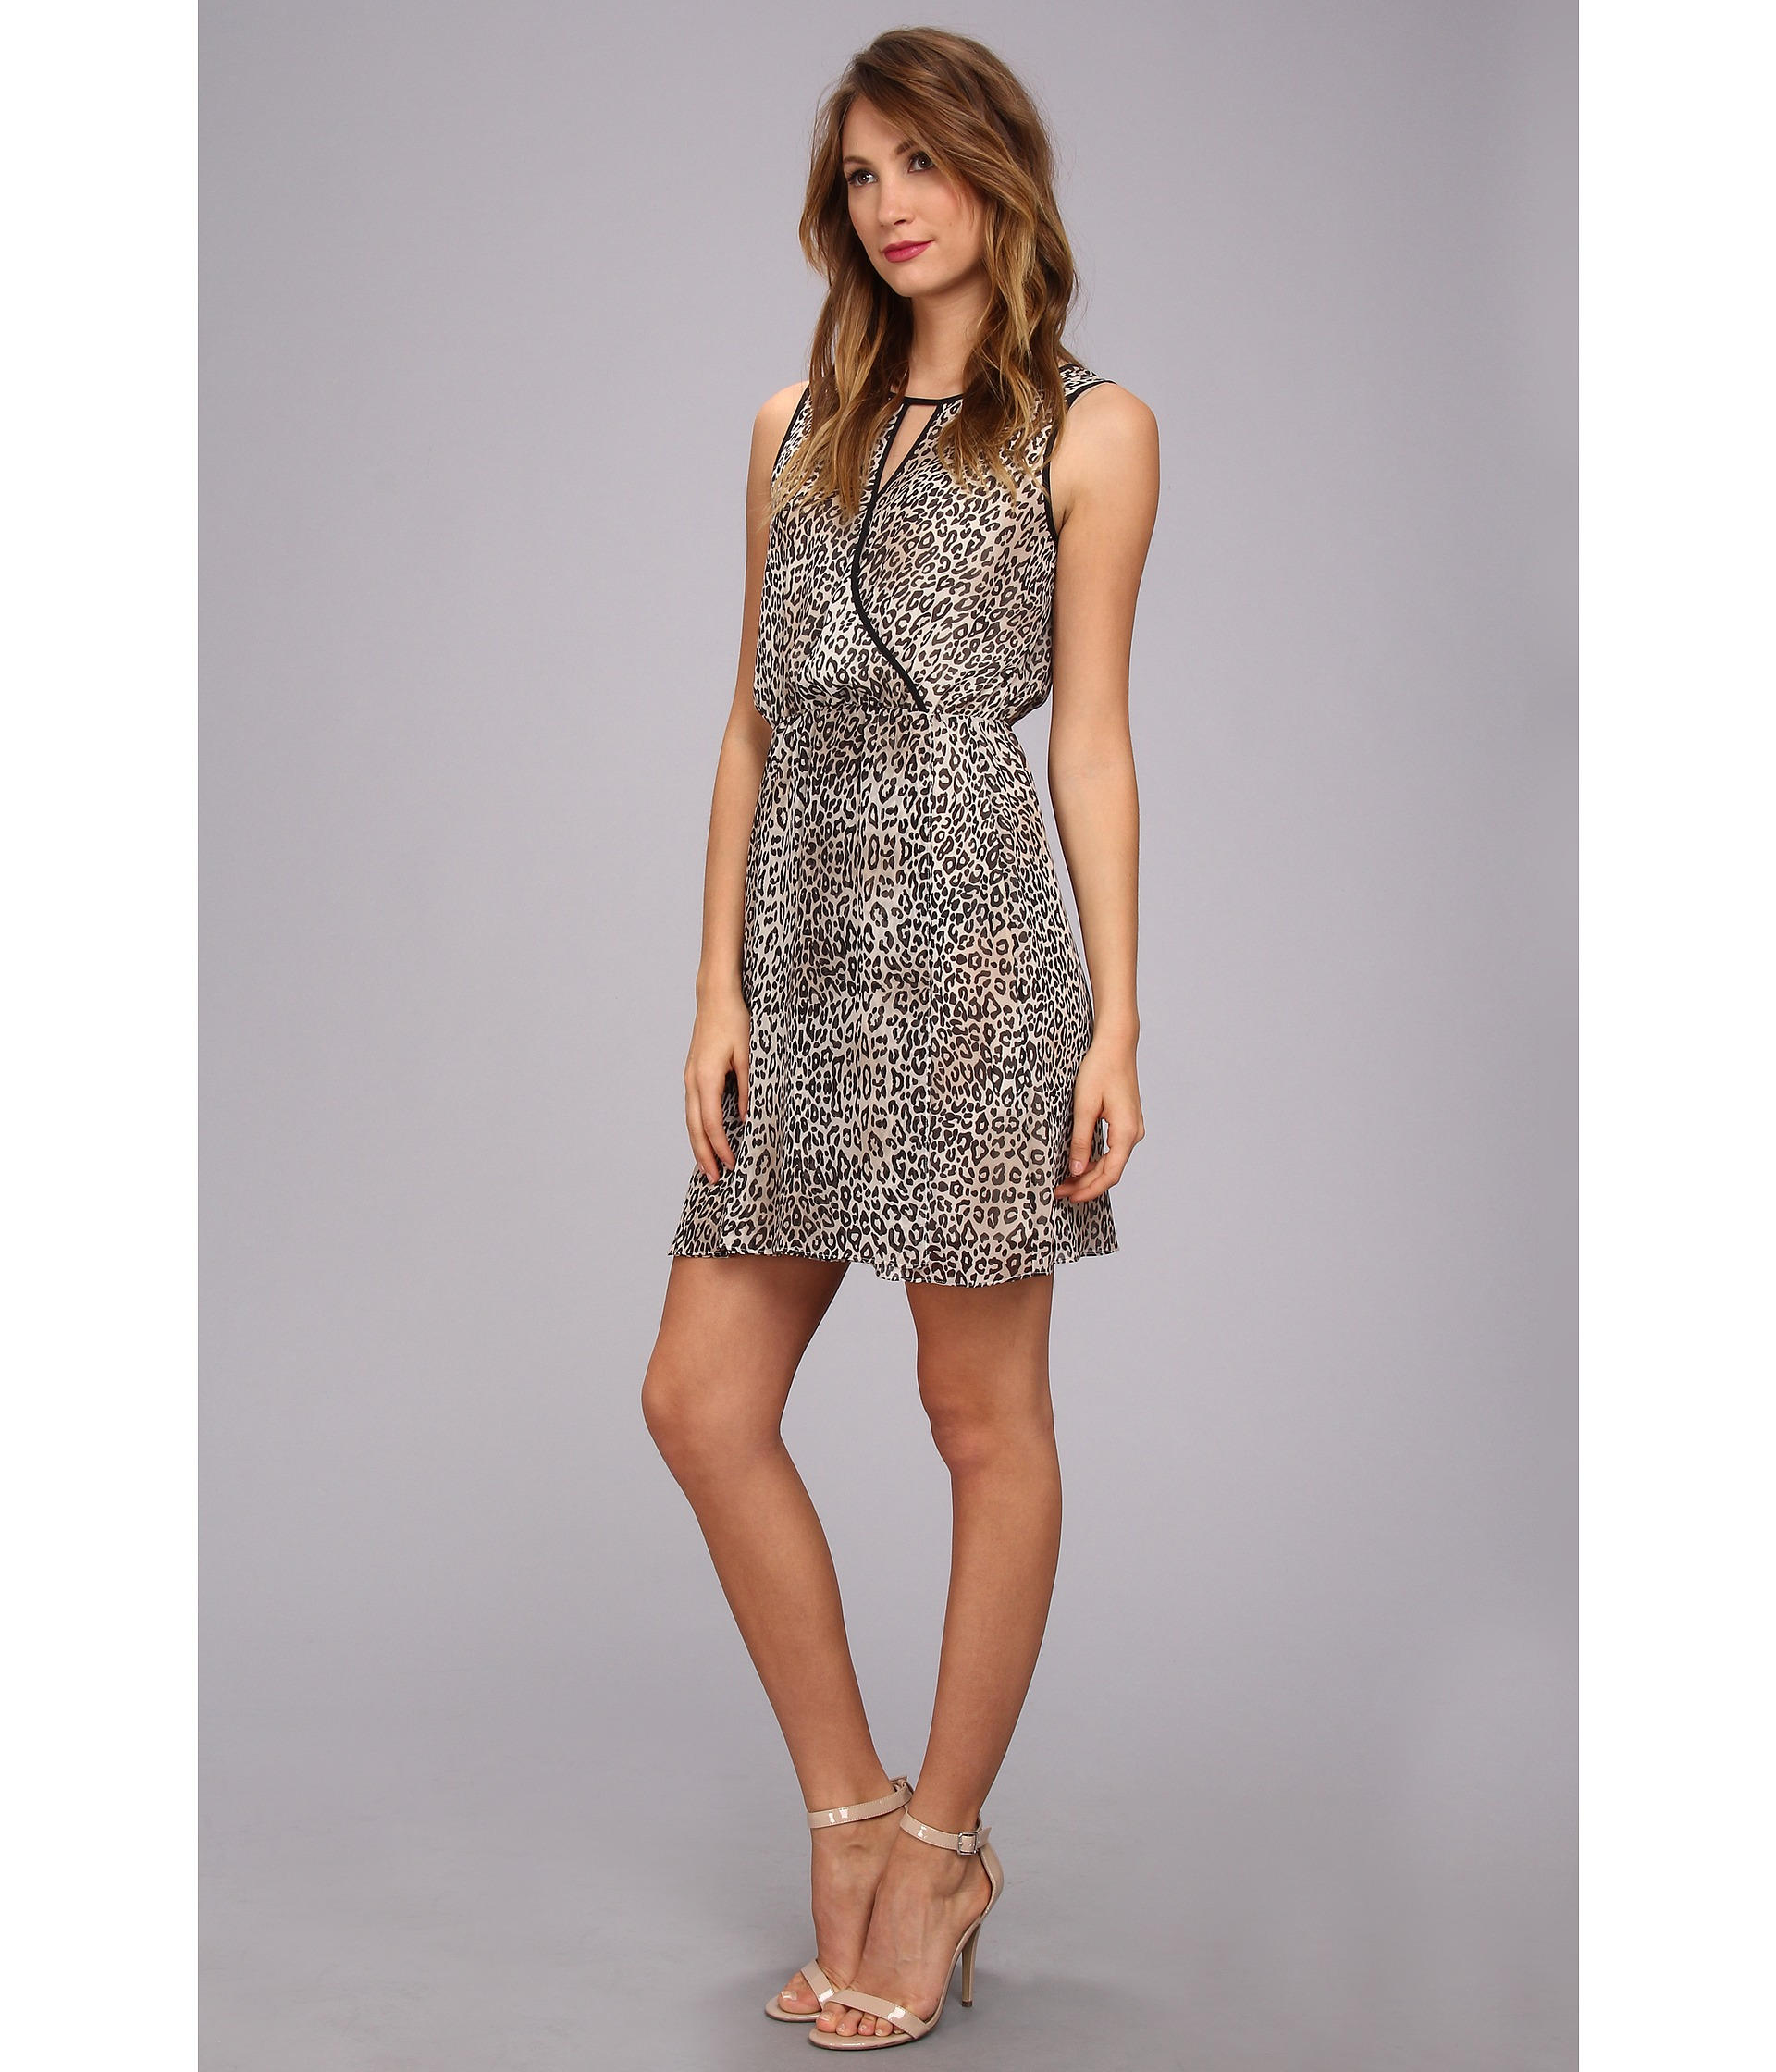 Vince clothing for women. Online clothing stores